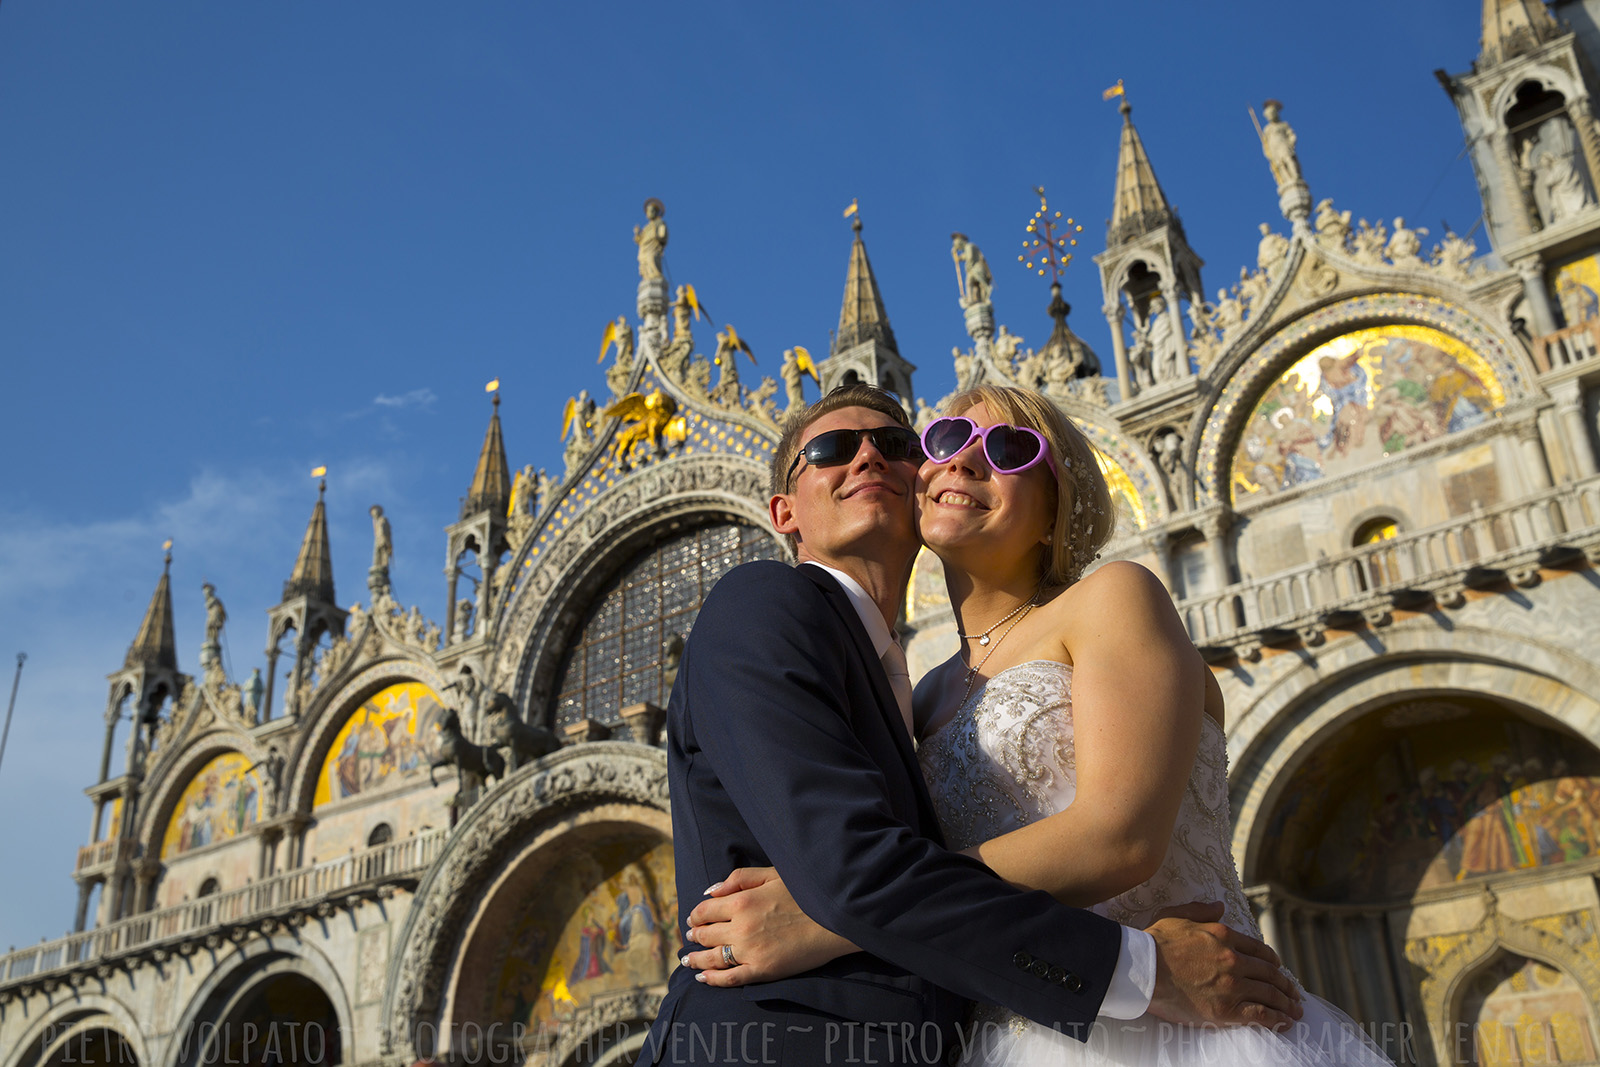 Venice photography session for wedding couple during walking tour and gondola ride ~ Venice honeymoon photographer